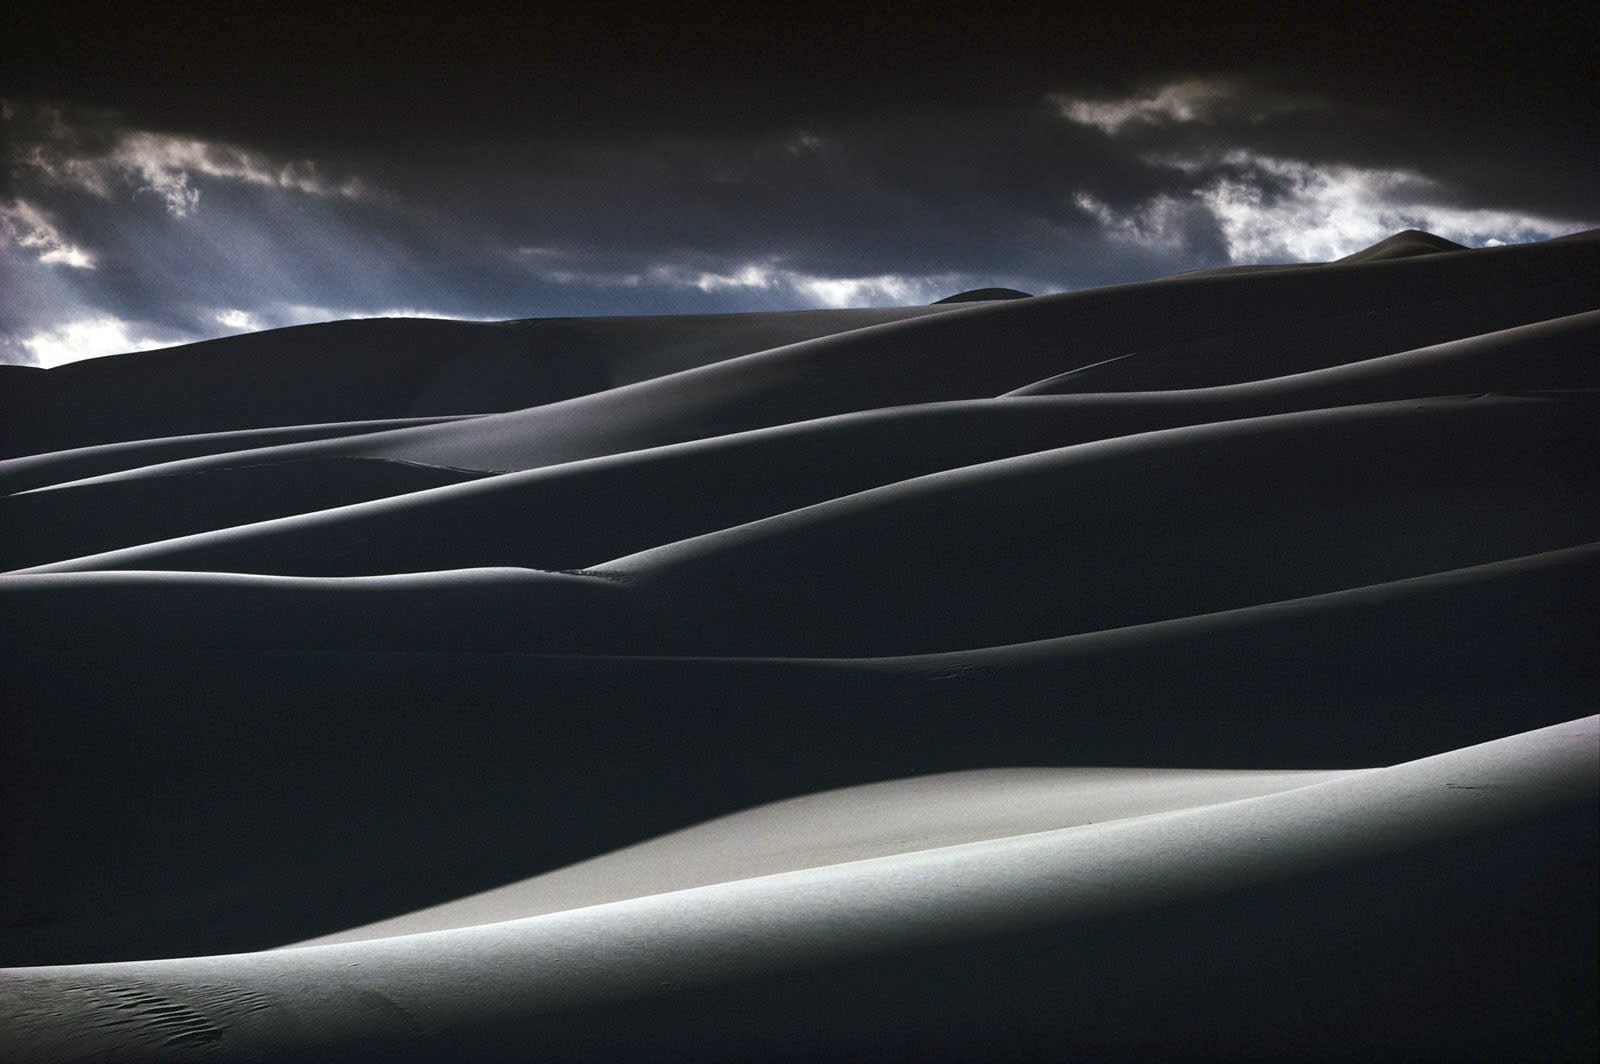 Ernst Haas, Great Sand Dunes, National Park, Colorado, 1978